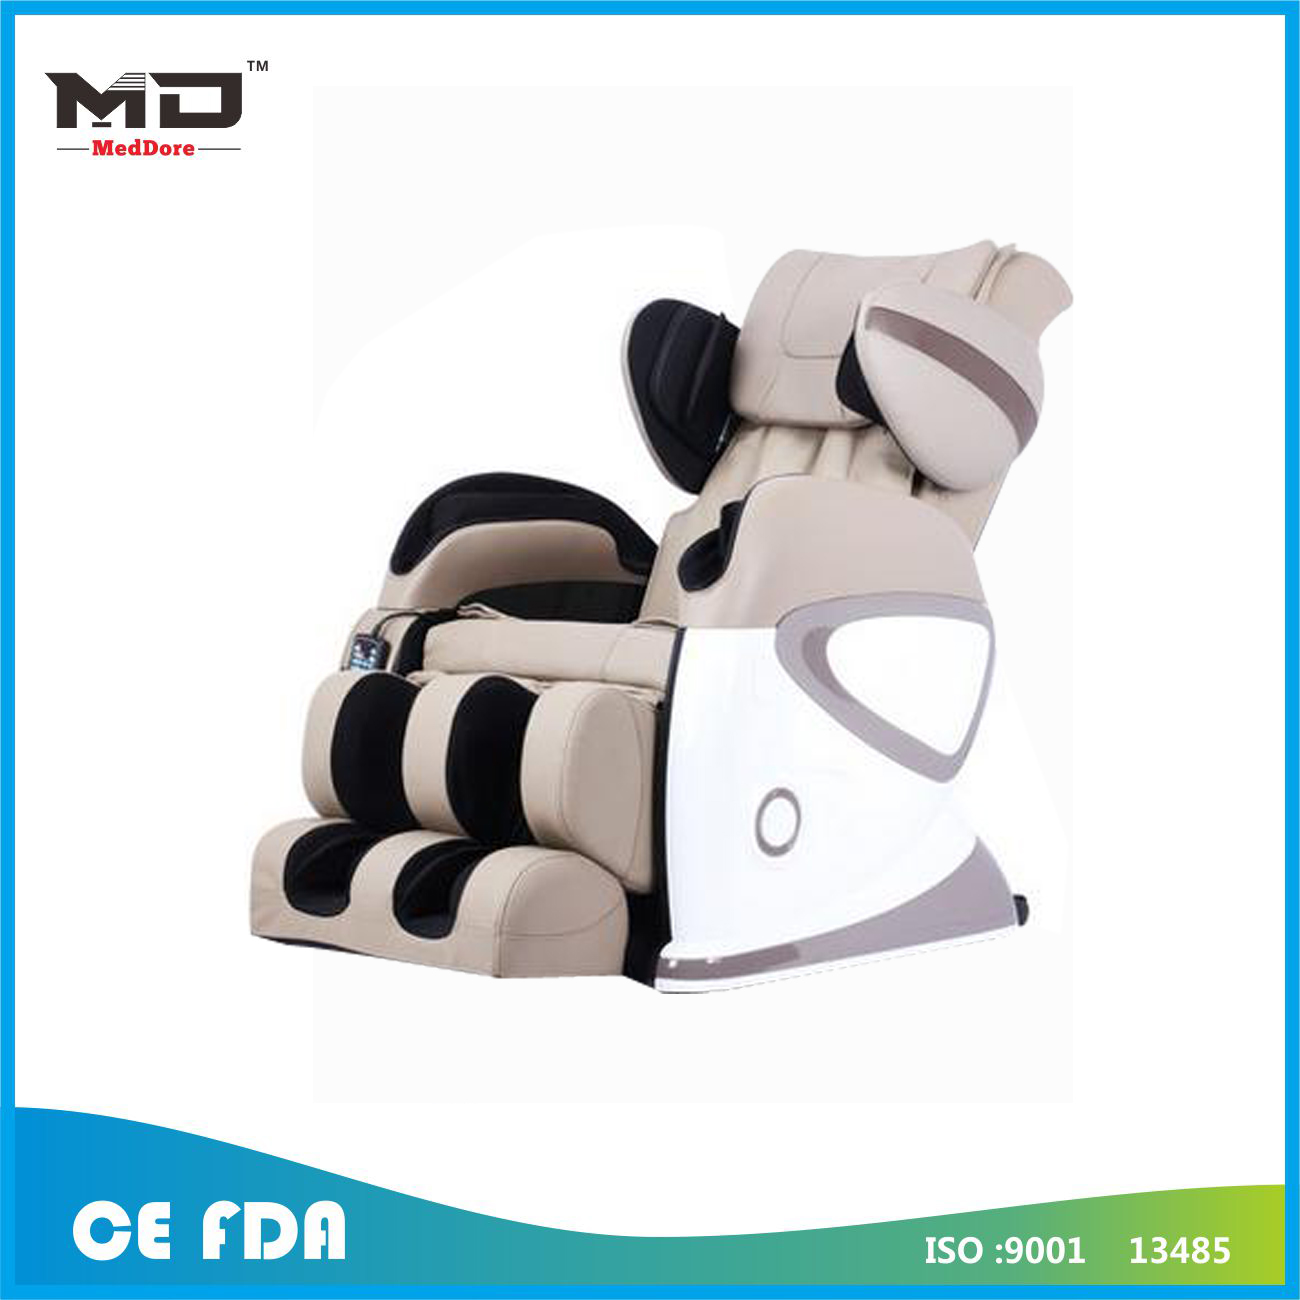 Meddore Brand Healthcare High Quality Power Supply for Massage Chair